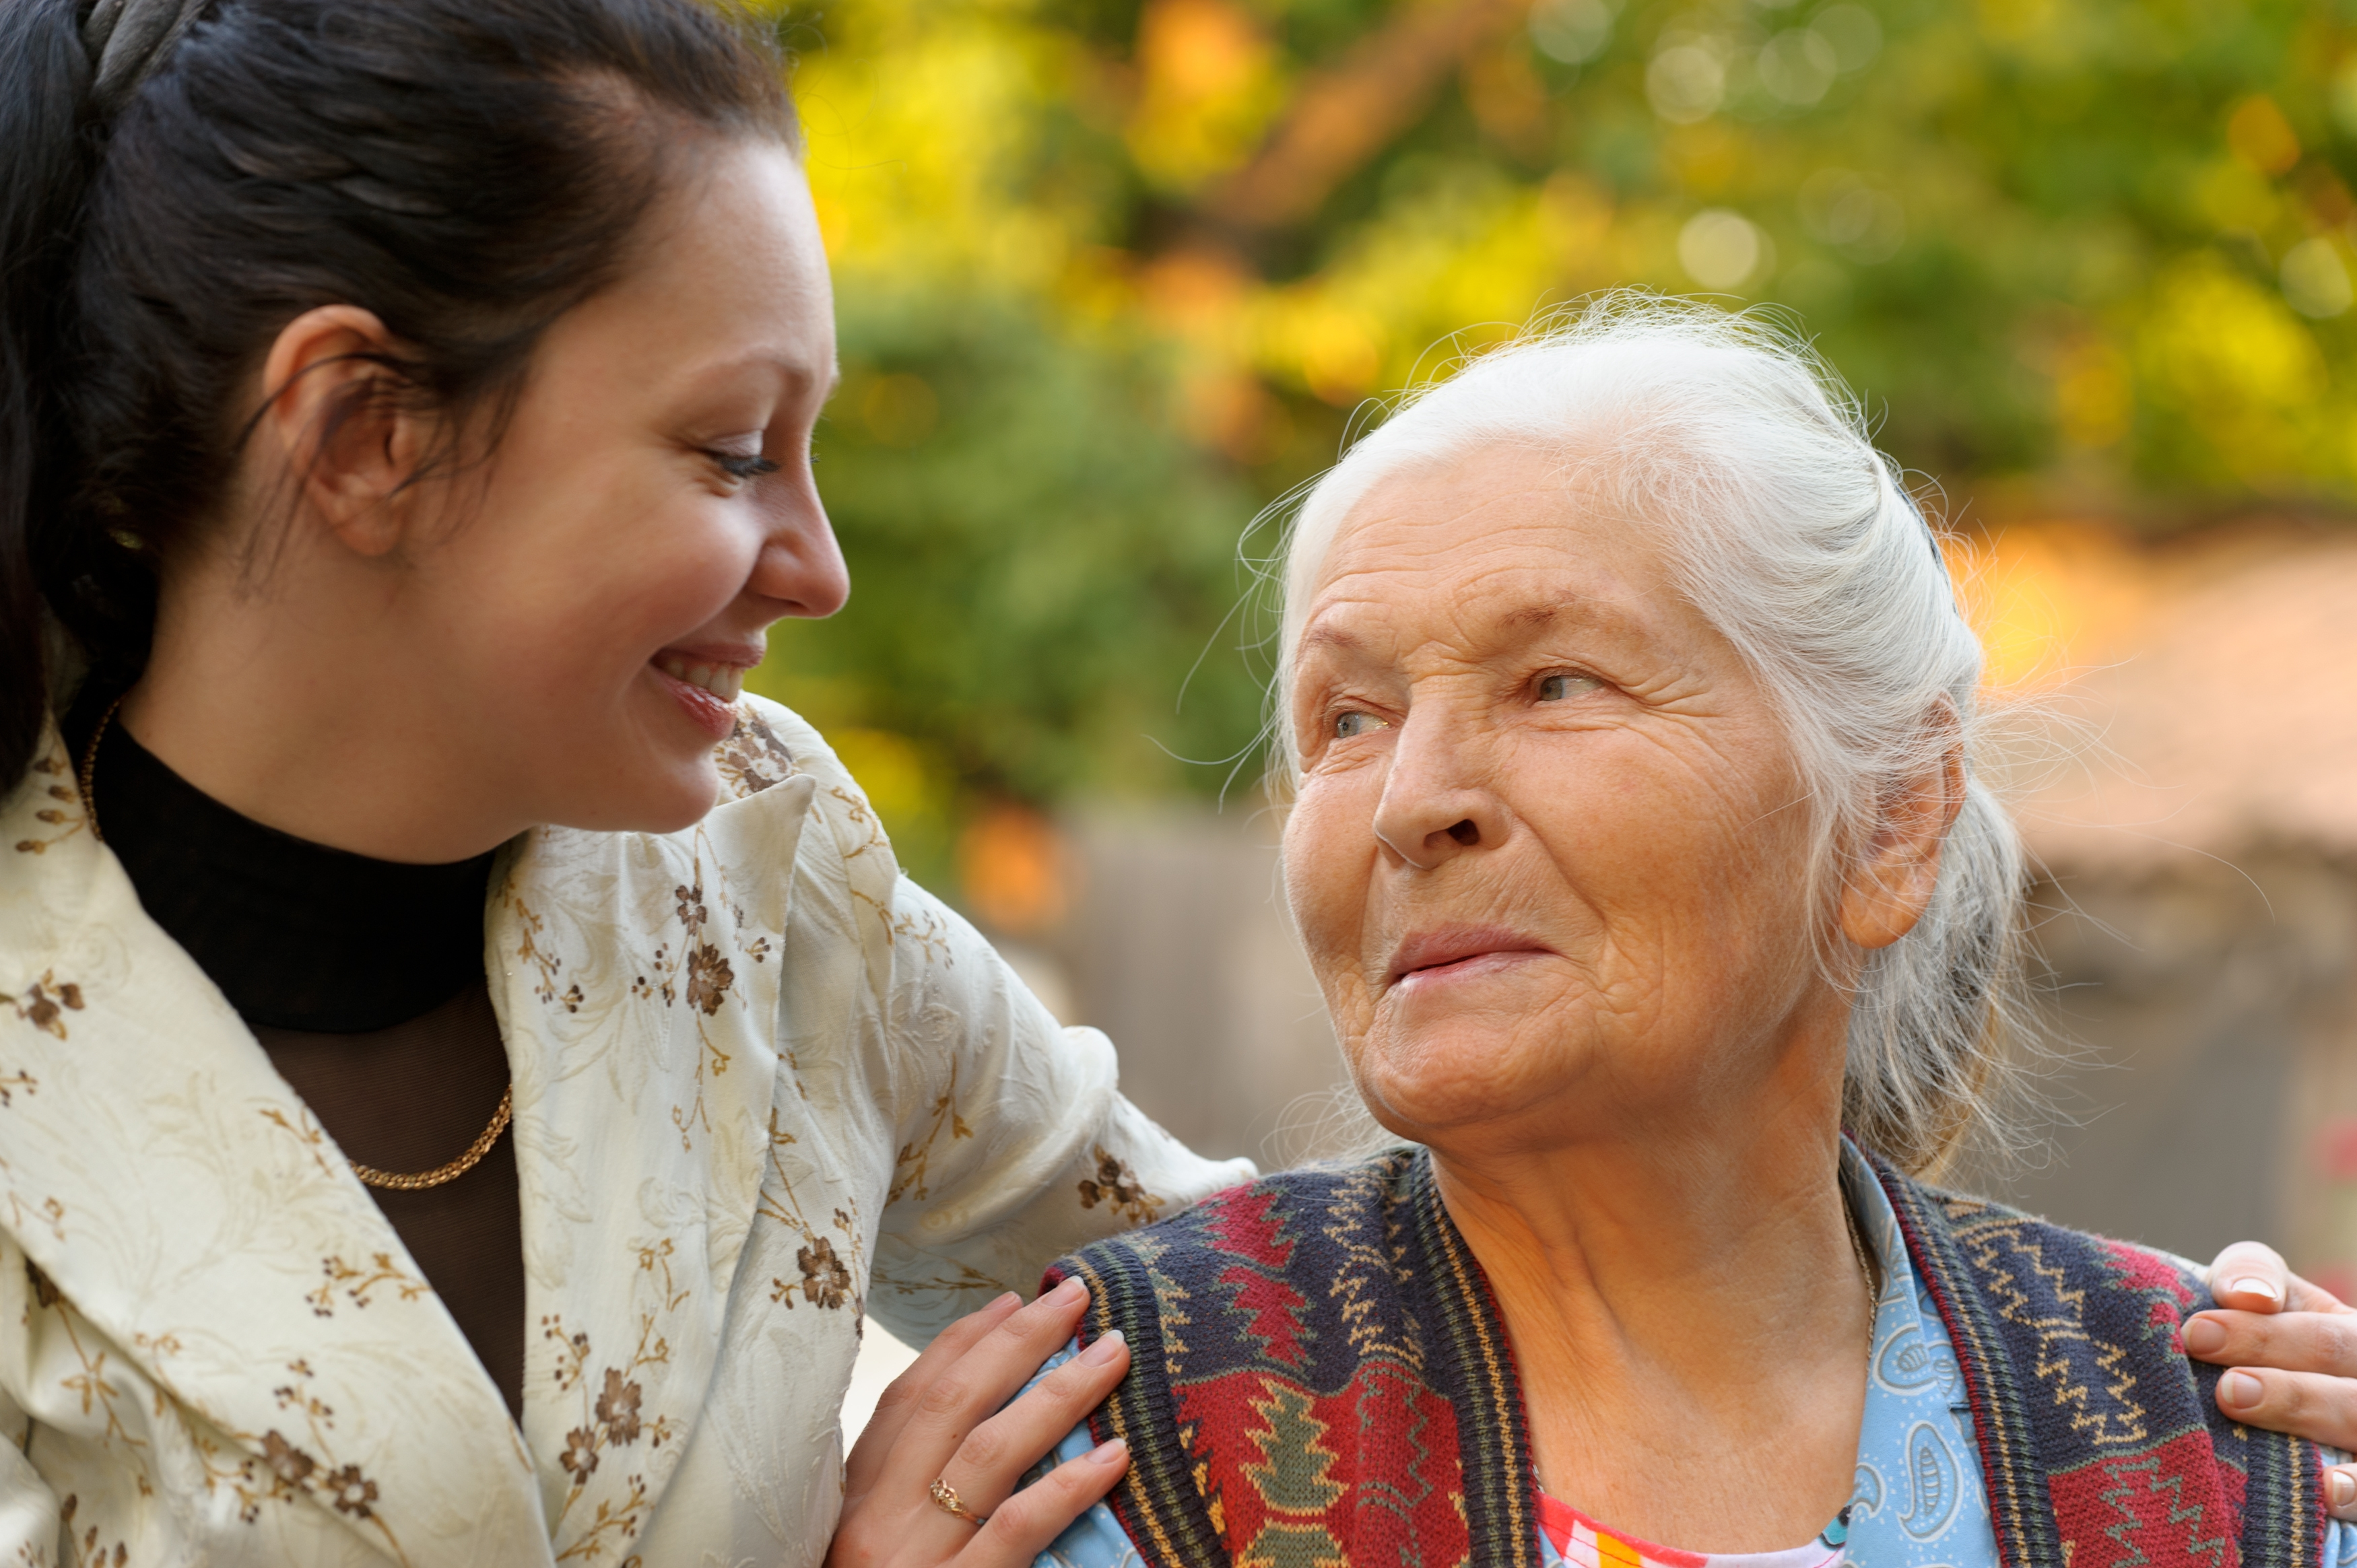 Difference Between Hospice Care and Palliative Care